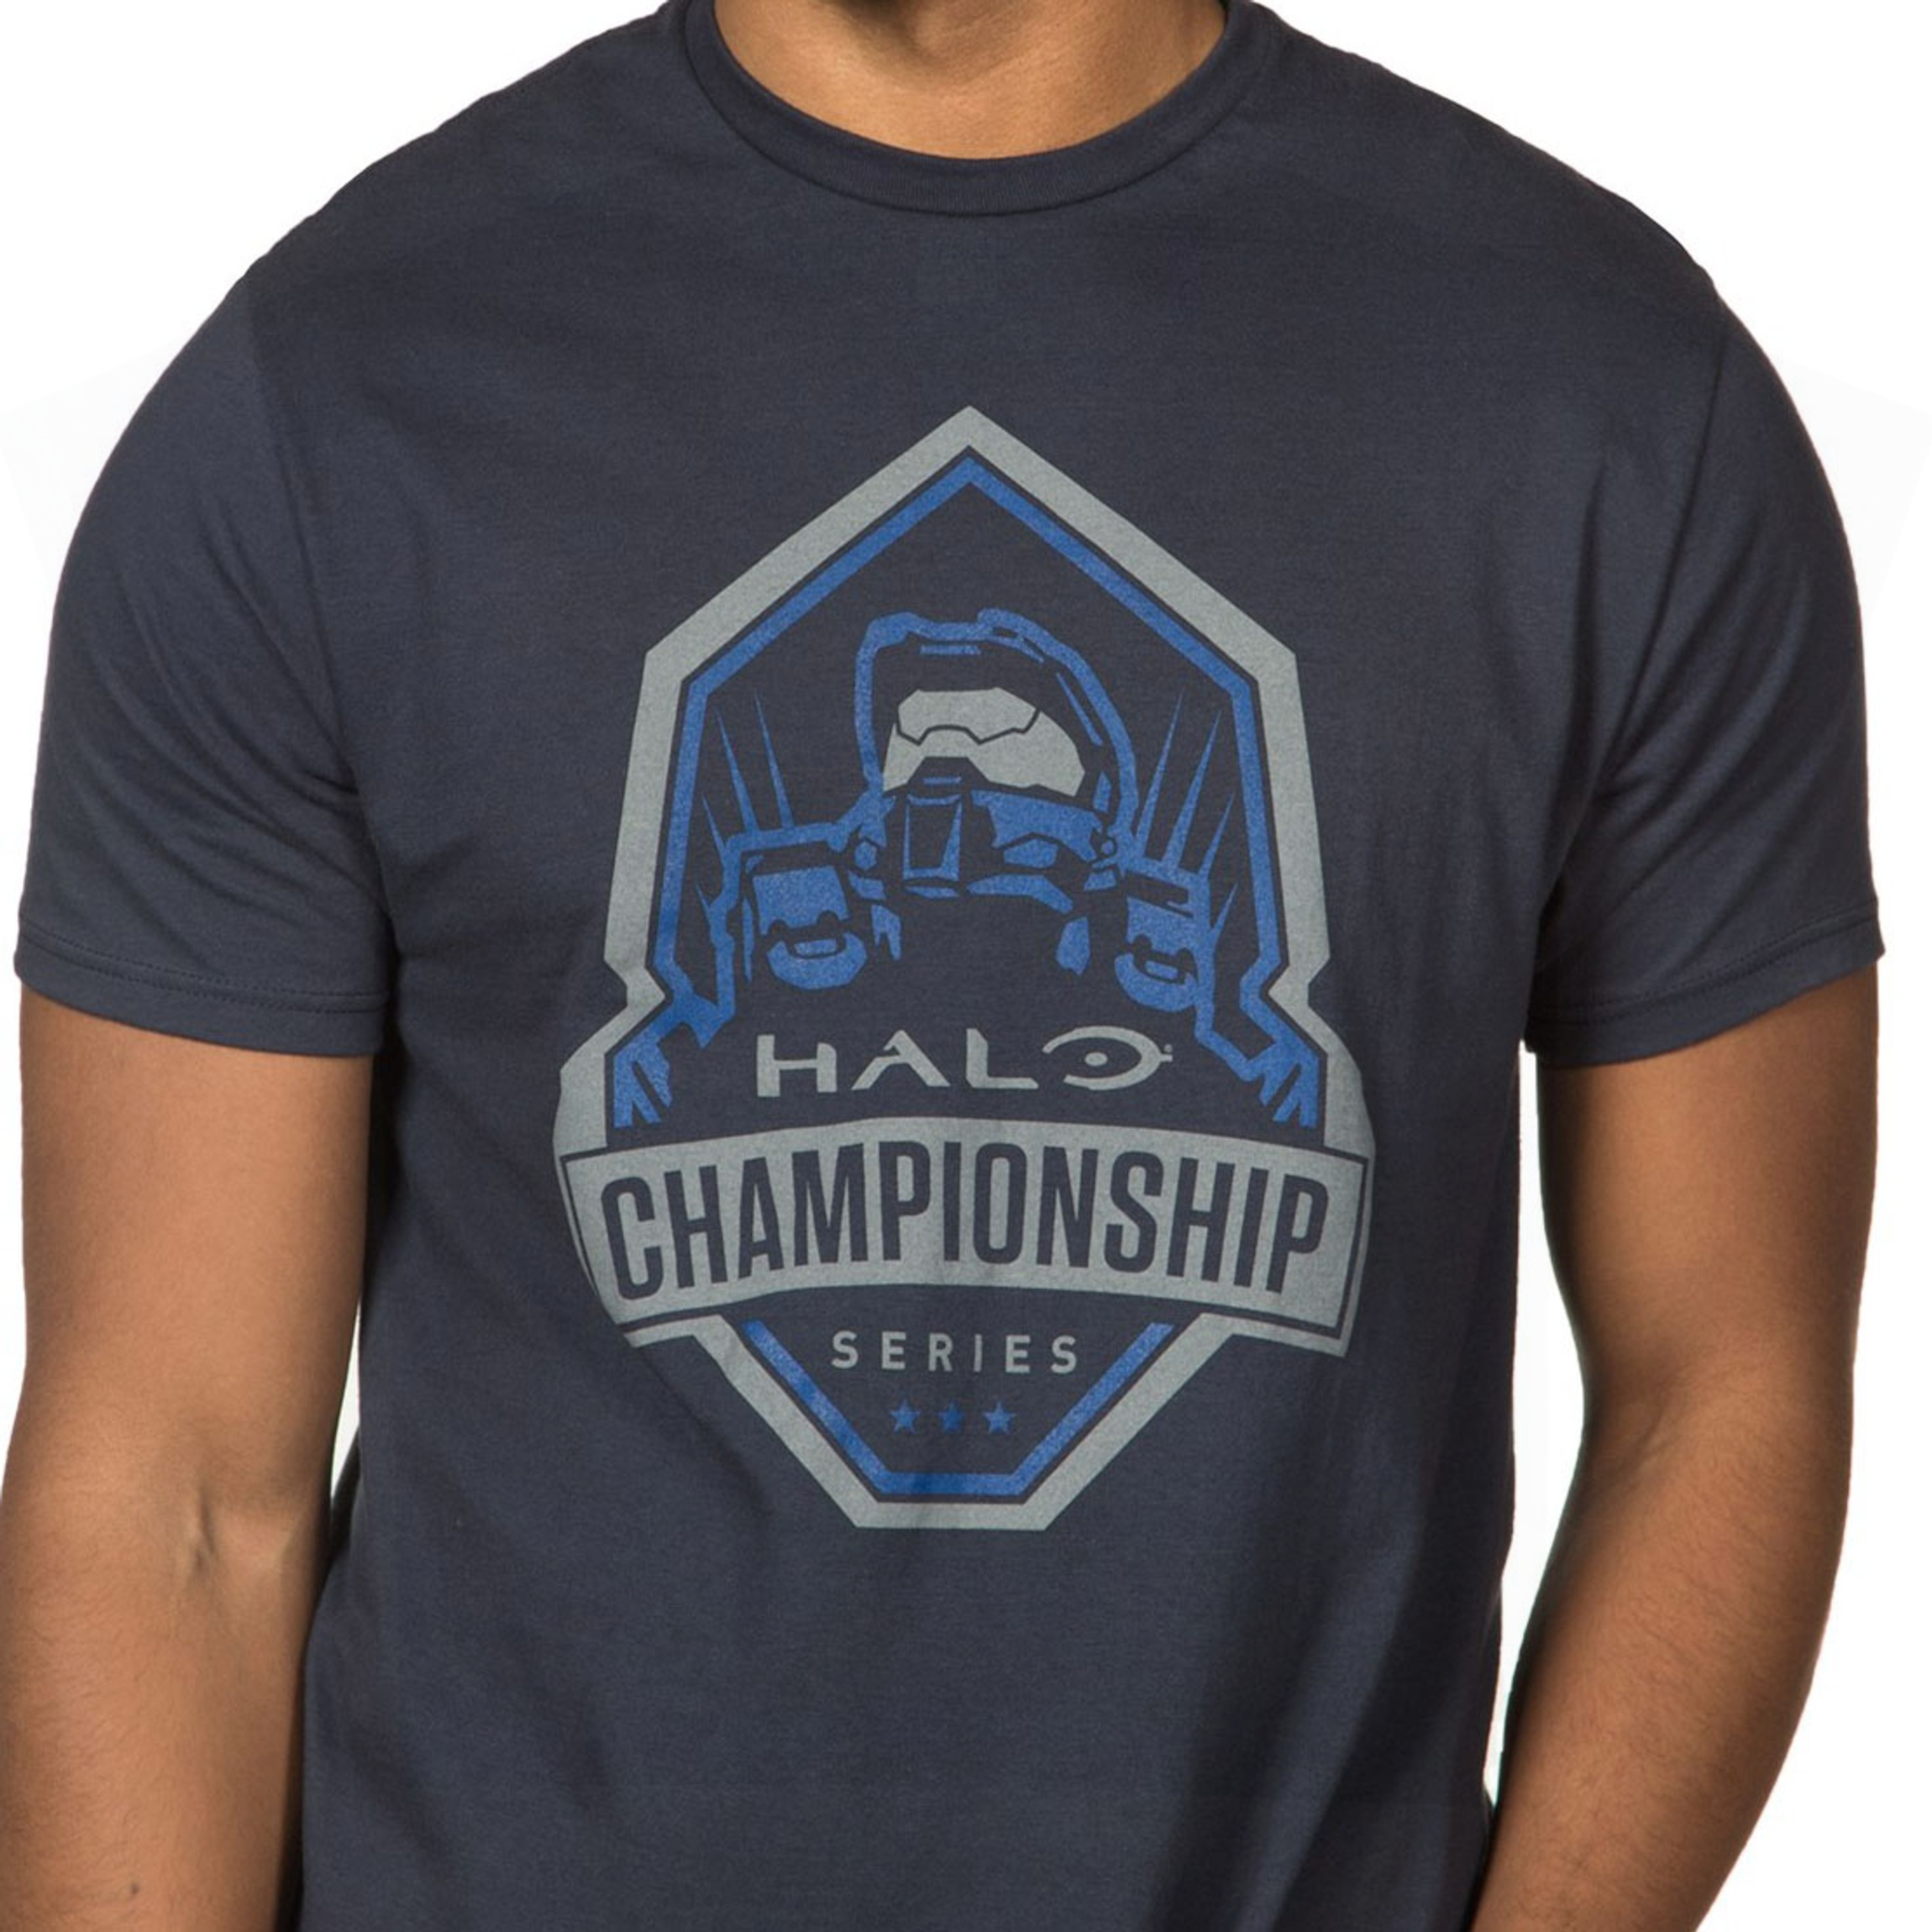 Photograph: Halo Championship Series Blue Team T-shirt